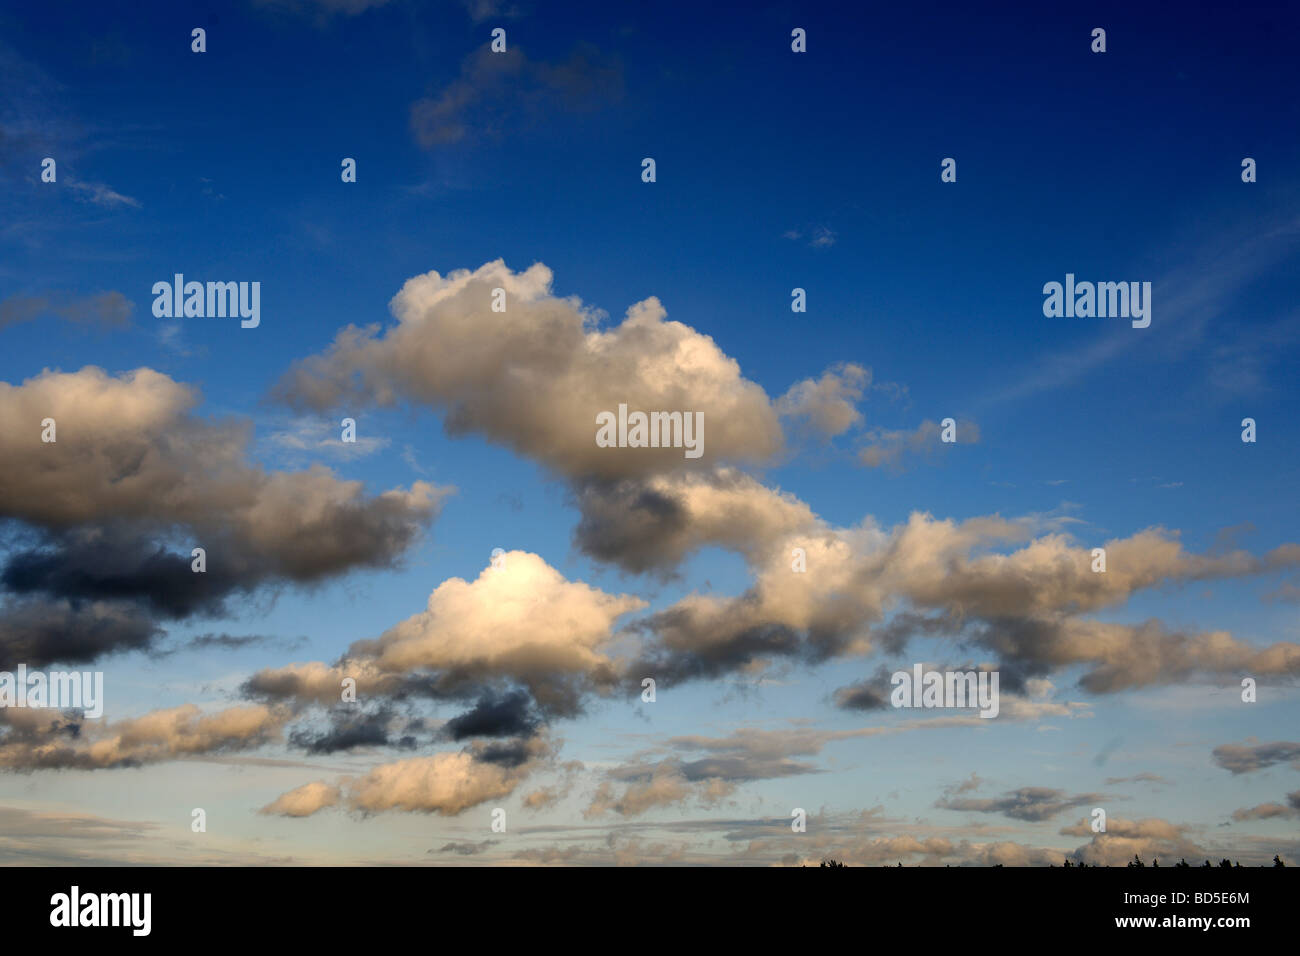 Heap clouds, rain clouds, thunder clouds, gathering thunderstorm - Stock Image